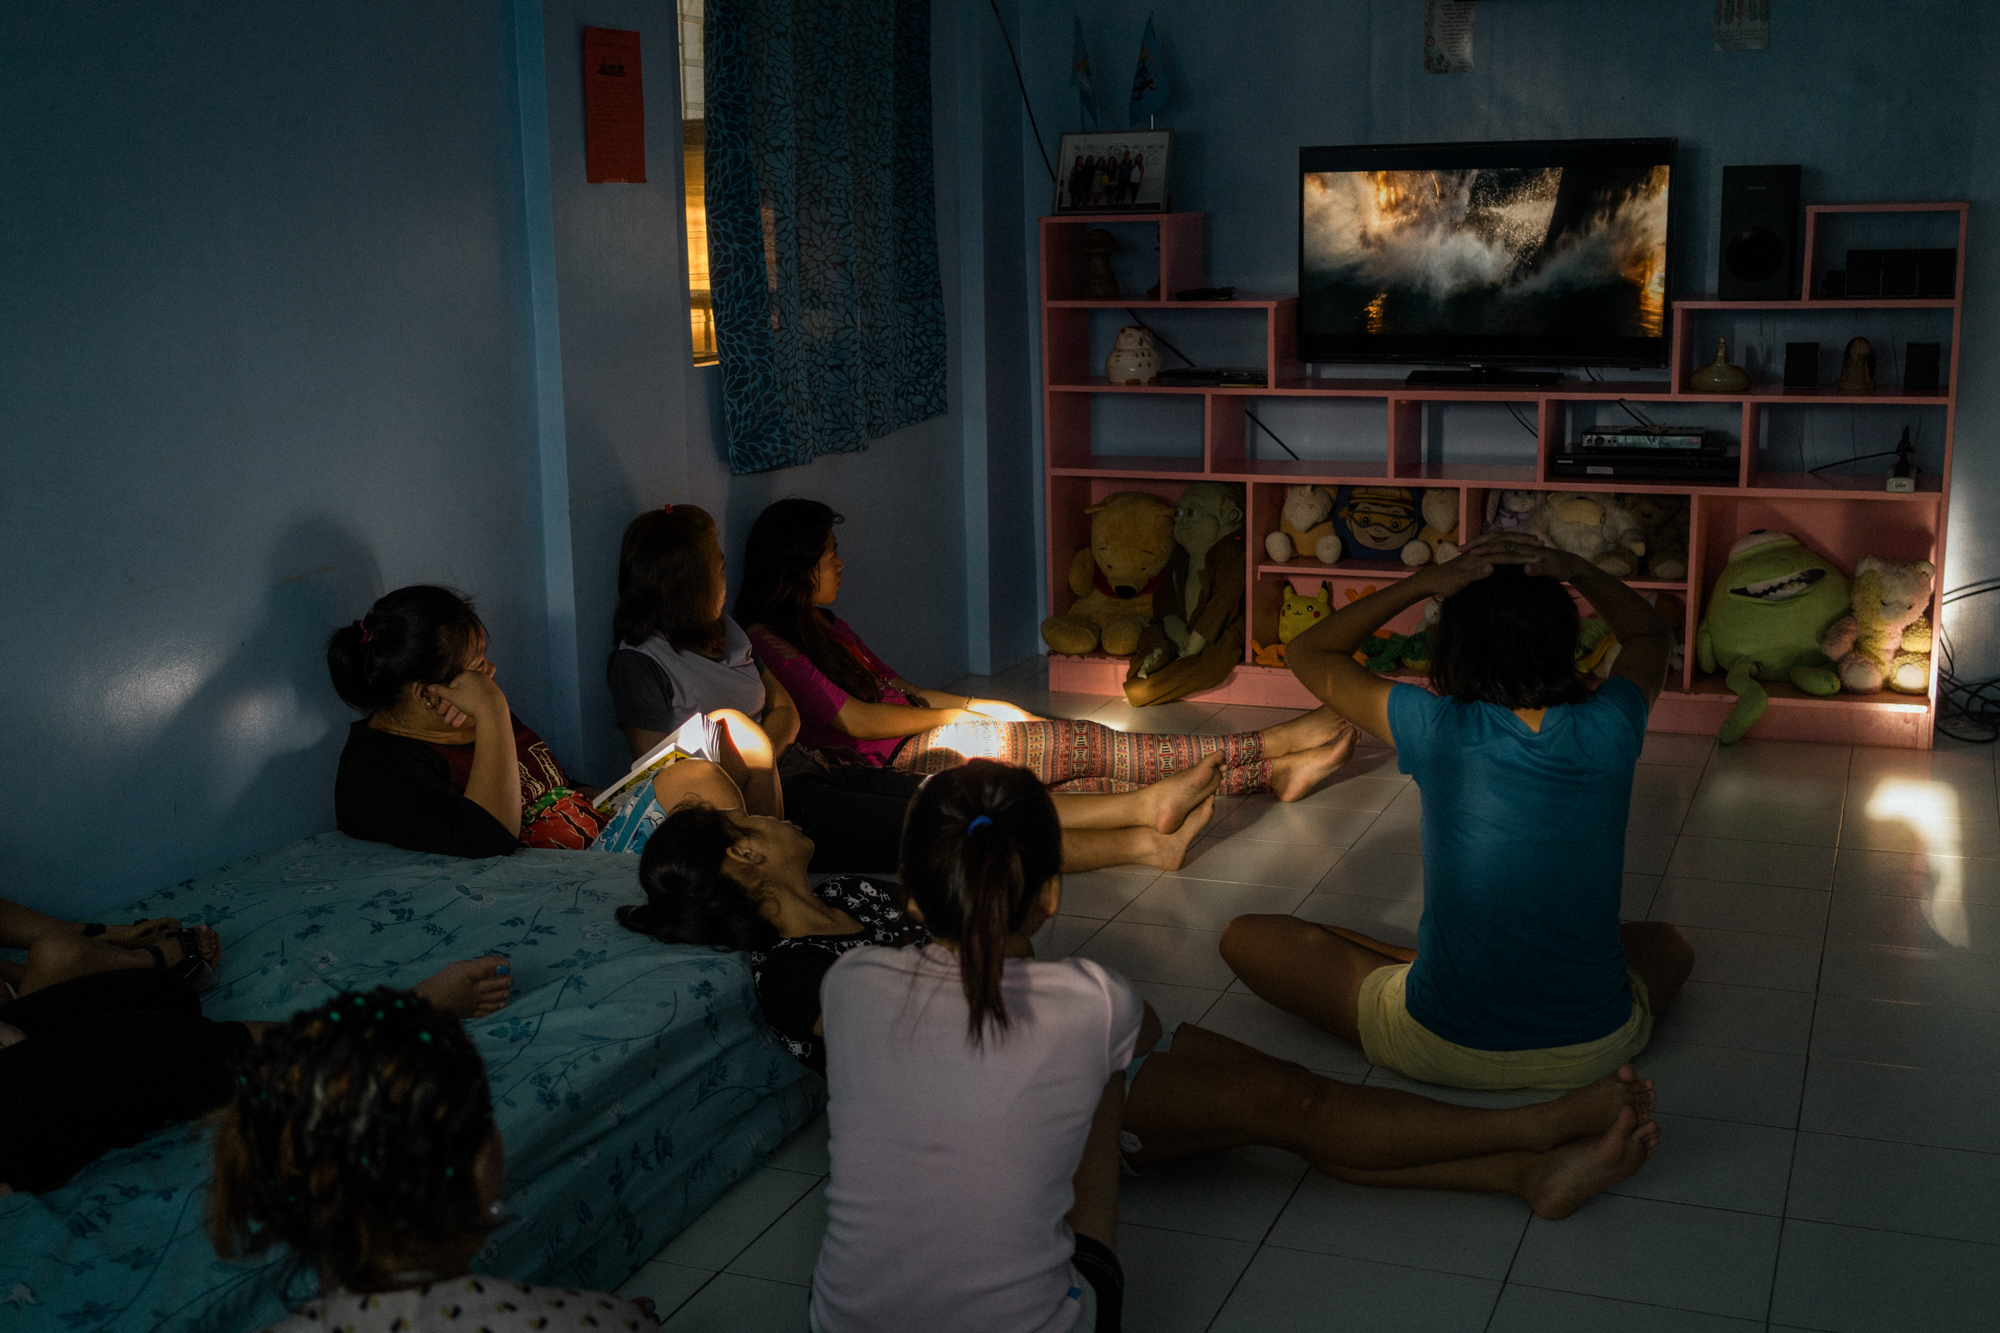 Girls watch television at a halfway house for victims of sex trafficking. Here, girls who are rescued get counseling, shelter, legal assistance, and, for some, education. (Photo by Hannah Reyes Morales/GroundTruth)